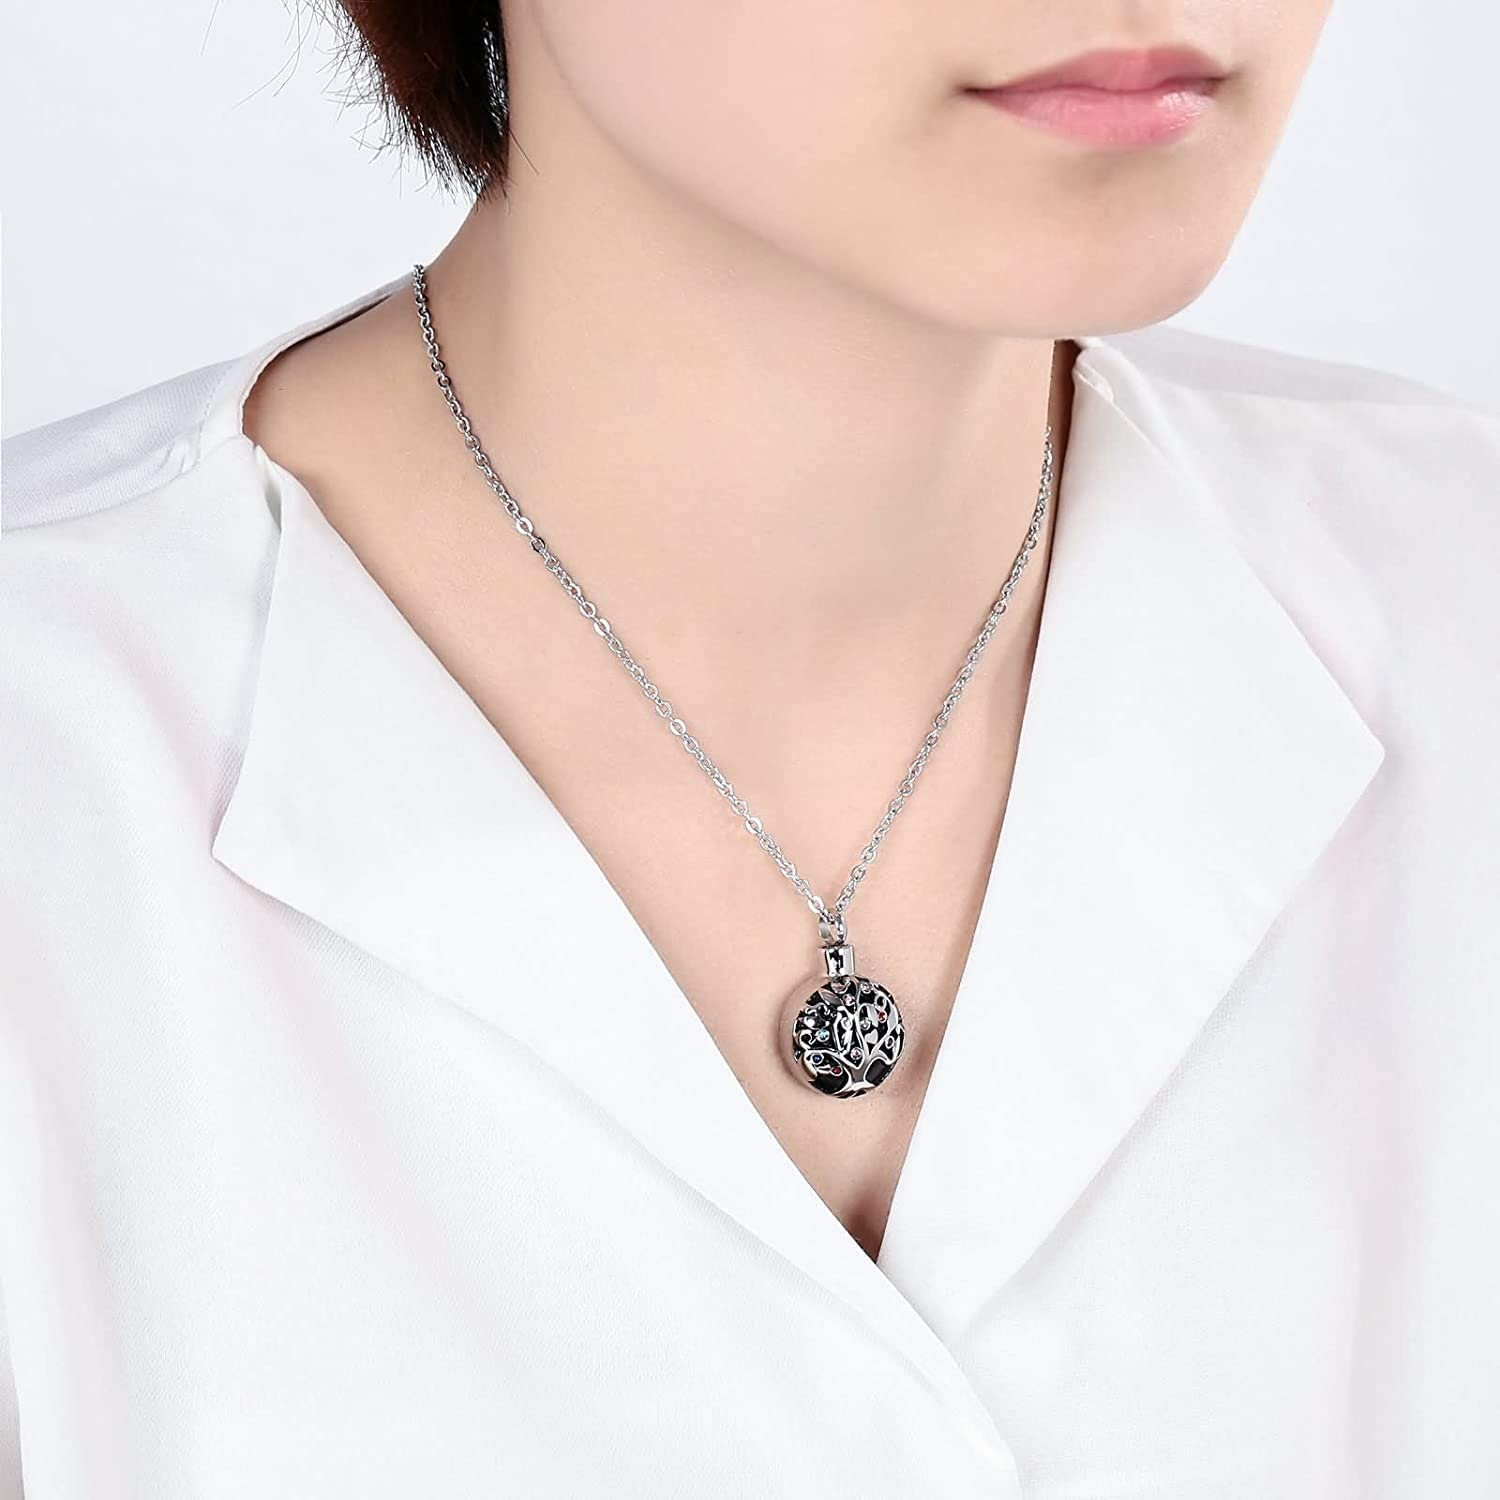 LOPEZ KENT Stainless Steel Cremation Jewelry Always in My Heart Tree of Life Cubic Zirconia Necklace Silver